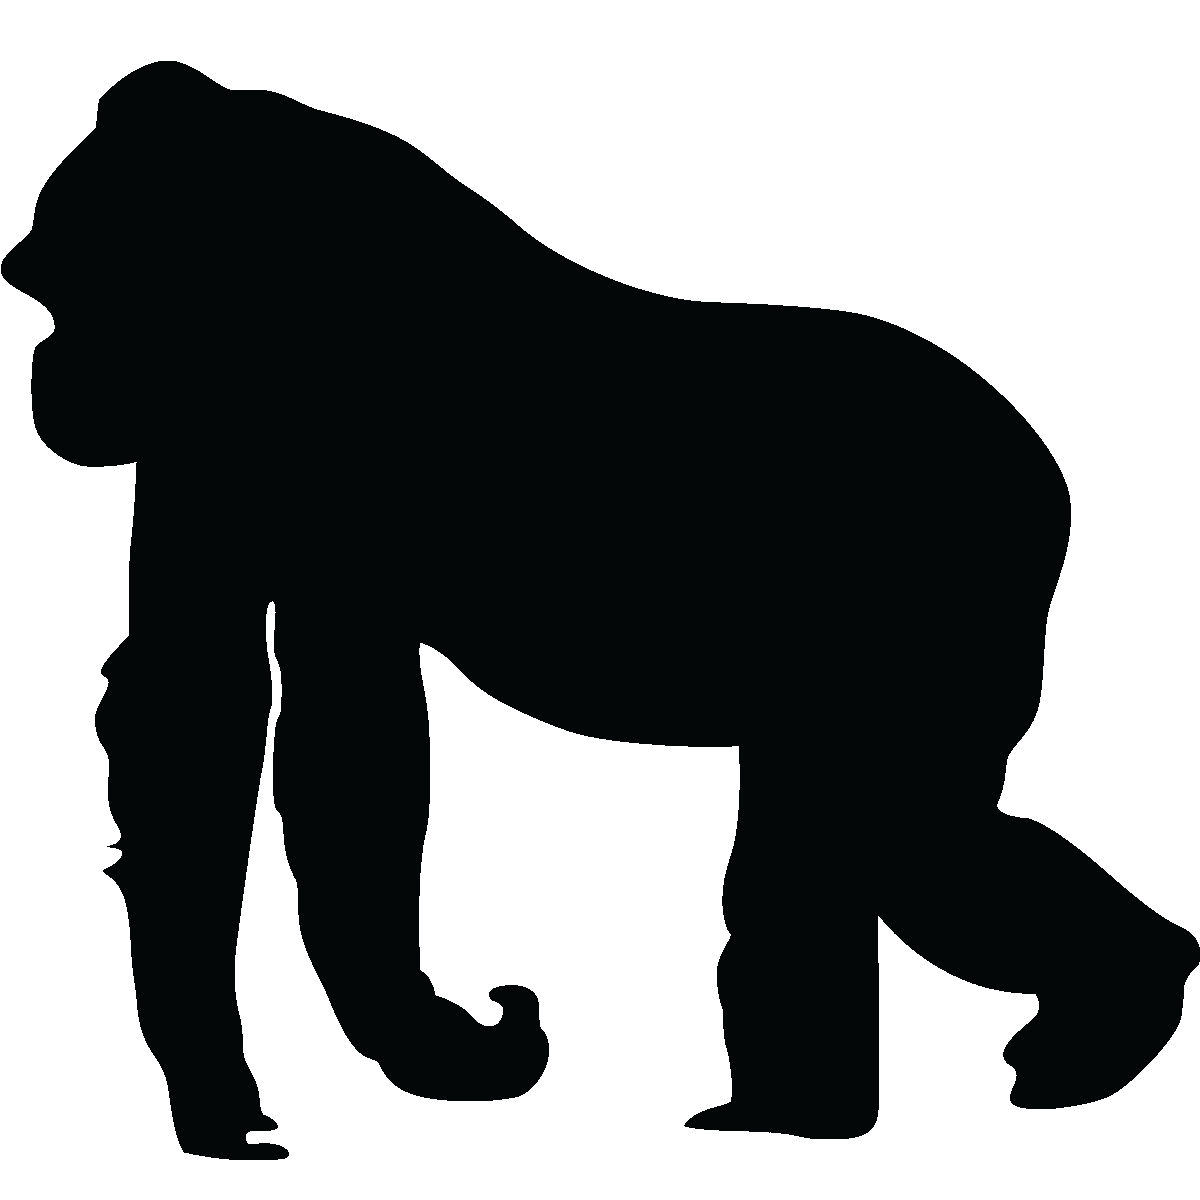 clipart royalty free Animals clipart gorilla. Silhouette wall dec more